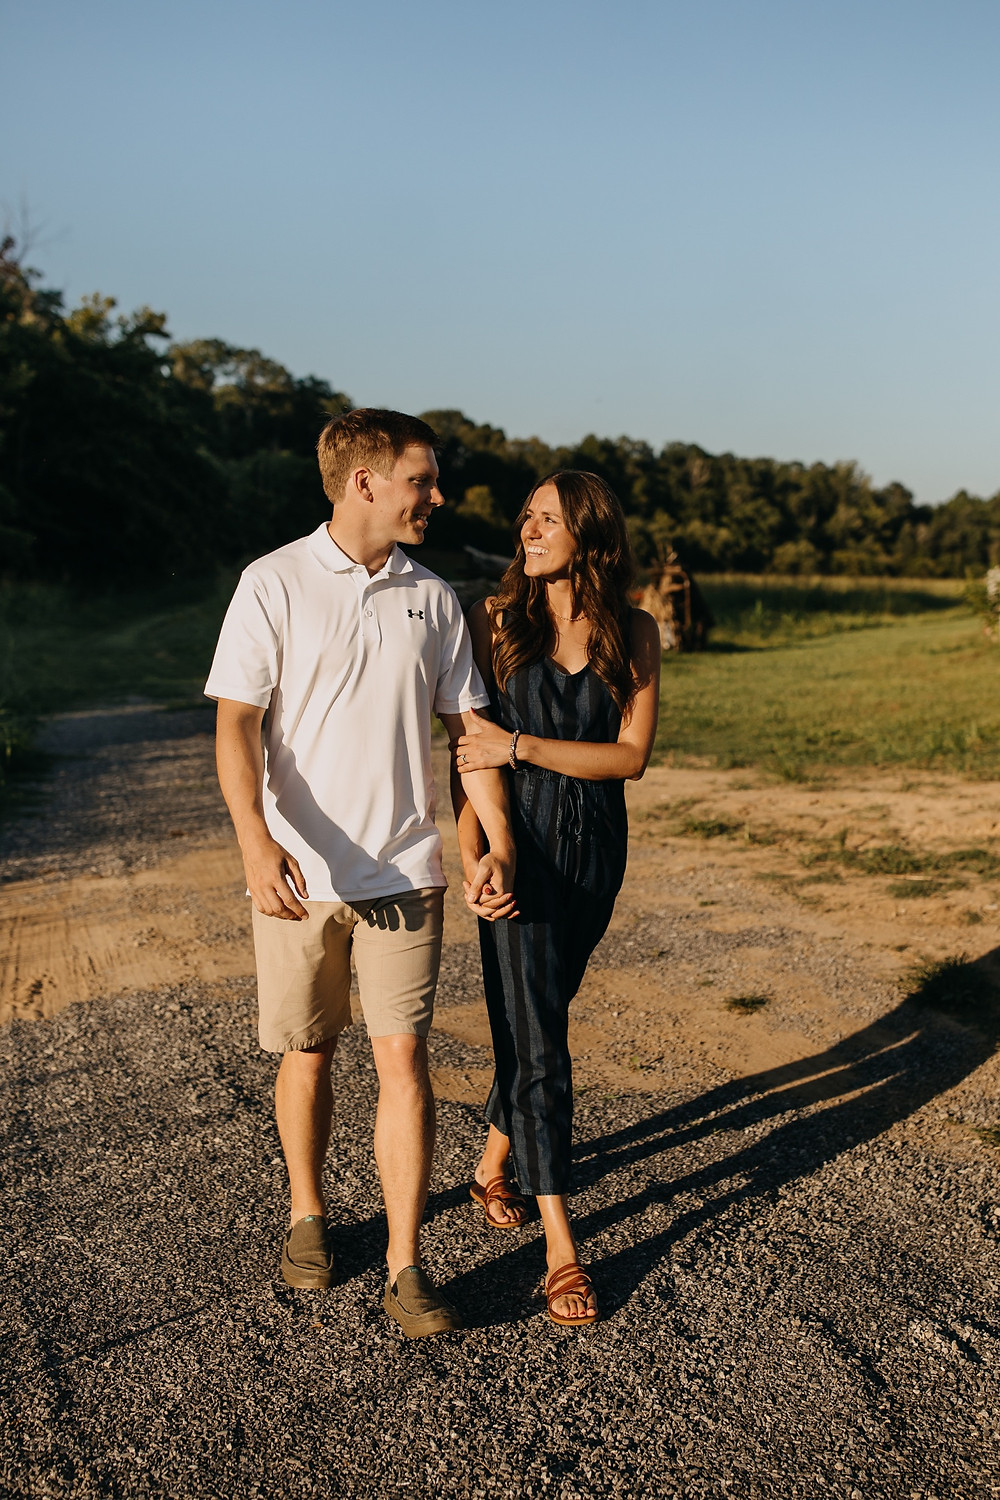 Cute romantic couple walking in sunlight during Family session in Knoxville and Gatlinburg, TN during golden hour